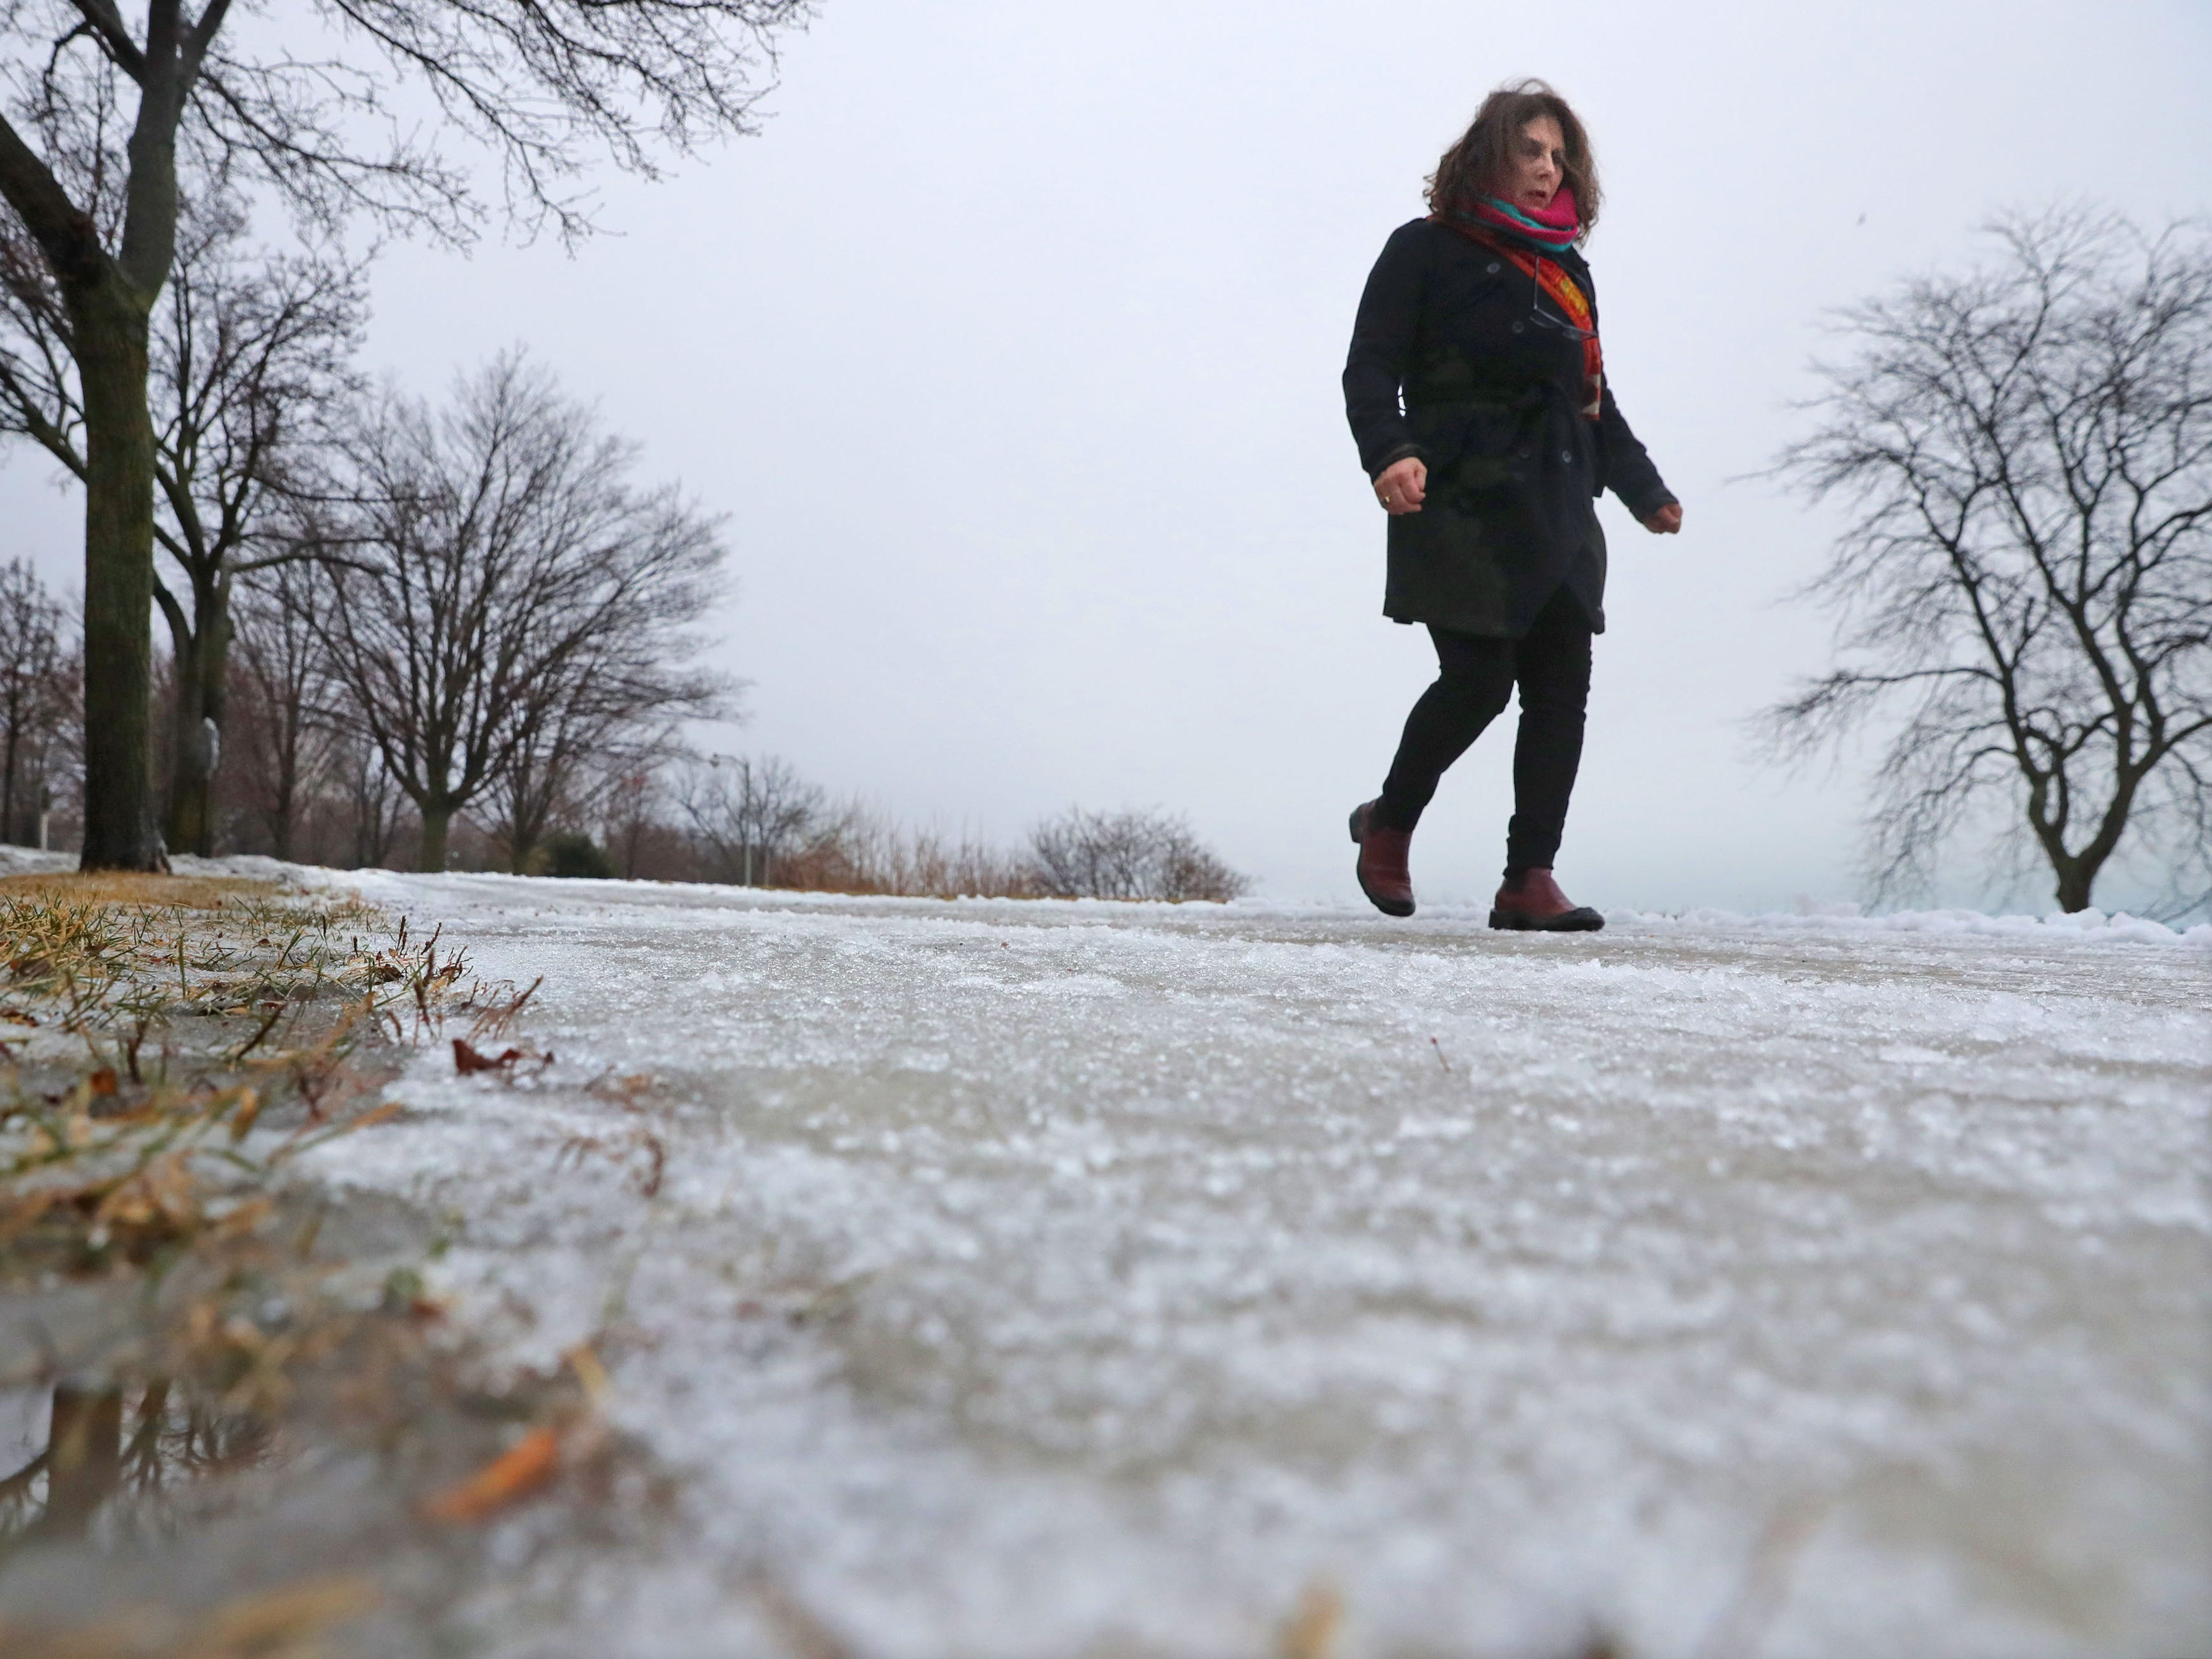 Dianna Sjoberg, of Milwaukee, watches her footing as she walks along an icy sidewalk on North prospect Avenue in Milwaukee on Wednesday, Feb. 6, 2019. While freezing rain made roads and sidewalks a slushy mess Wednesday, the Milwaukee metro area is in for another round of icy weather that is expected to make the commutes hazardous Wednesday night and Thursday morning. A winter weather advisory for Ozaukee and Washington counties as well as the Madison area has been issued for 6 p.m. Wednesday to 6 p.m Thursday. Total snow accumulations of up to 2 inches and ice accumulations of two-tenths to three-tenths of an inch are expected.